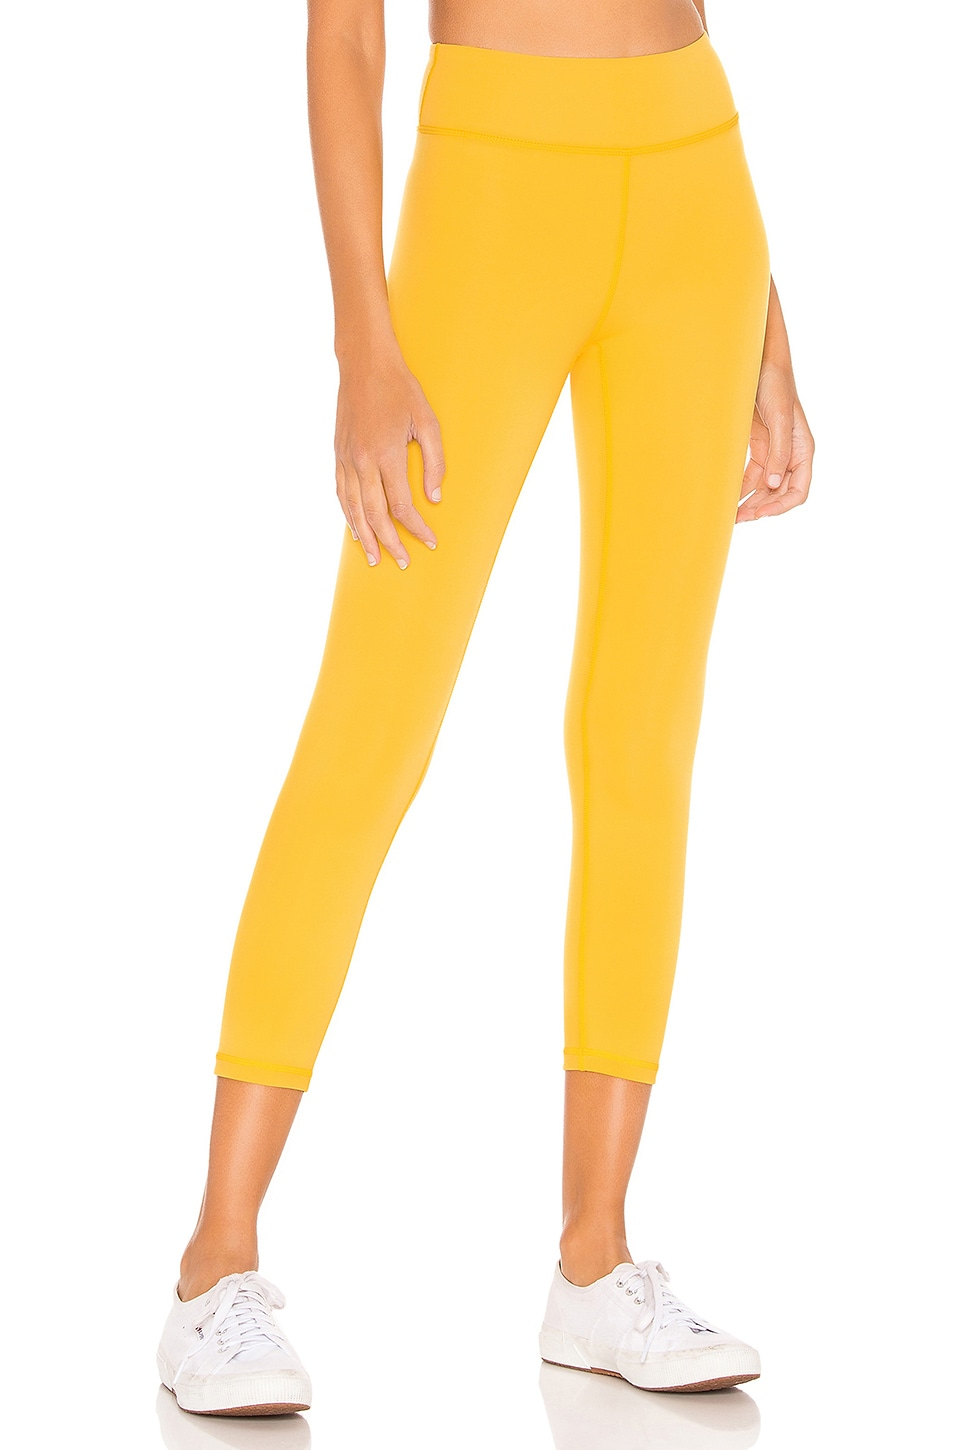 lovewave Luka Pant in Yellow